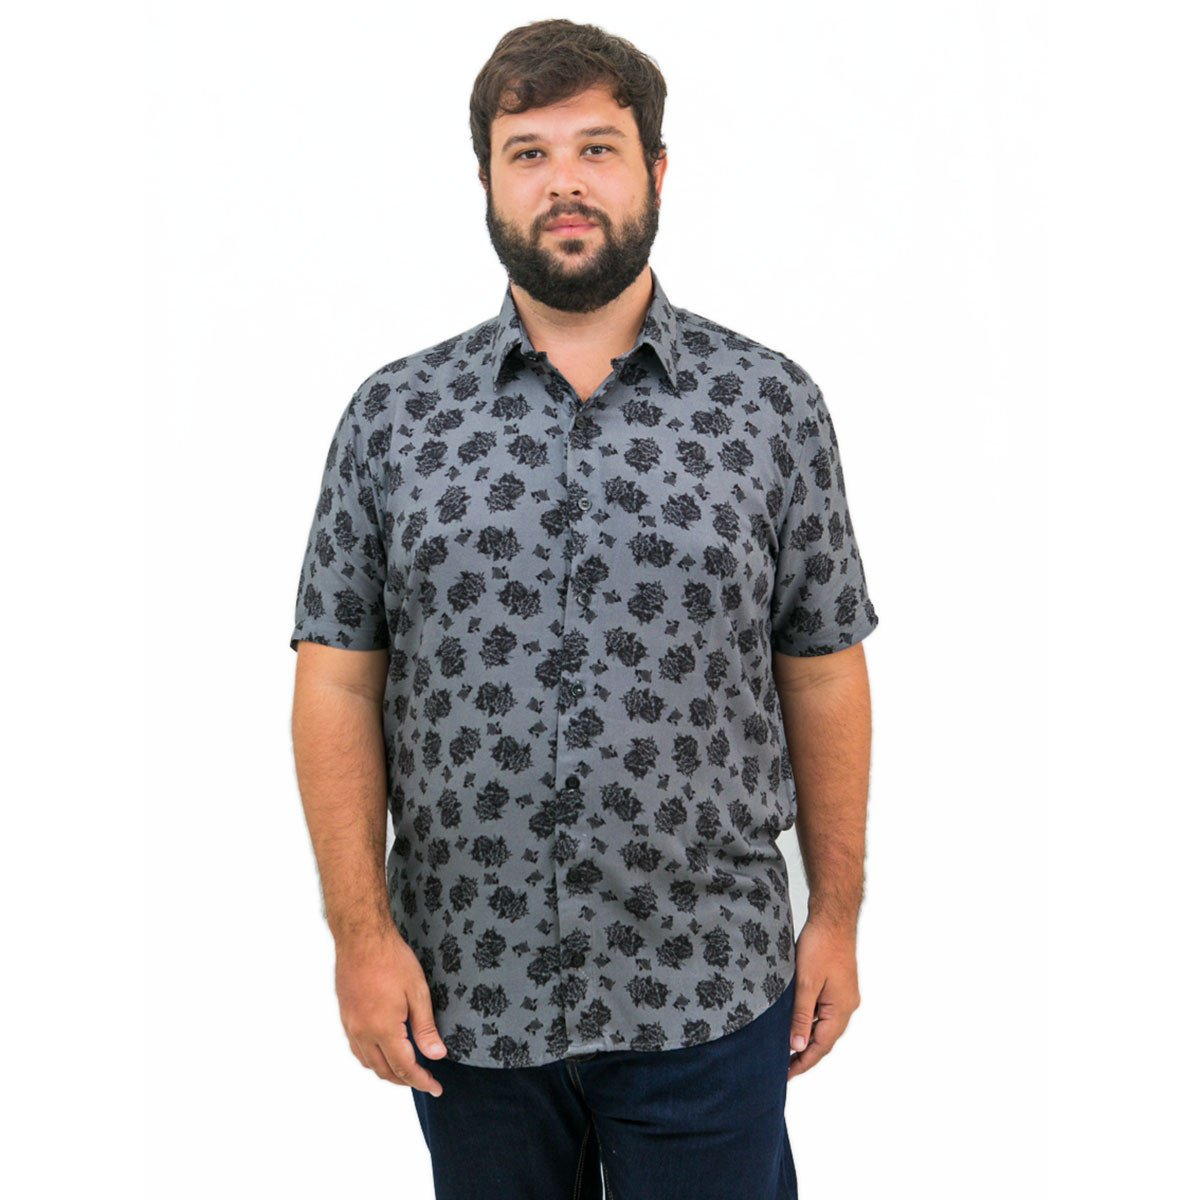 Camisa Plus Size Masculina Black Rose